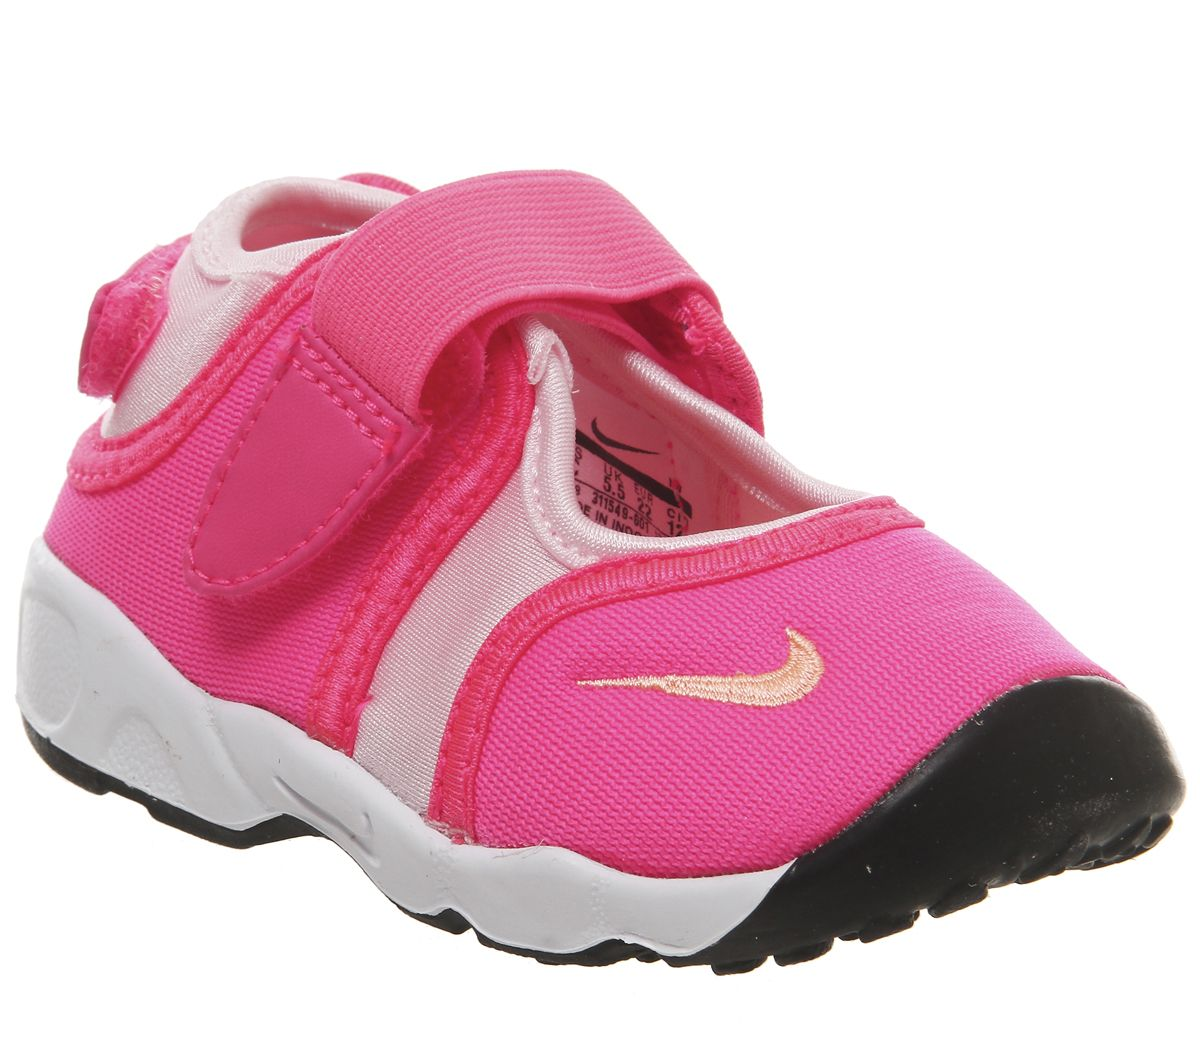 sneakers for cheap 1beae a900d Nike Rift Infant Trainers Racer Pink Sunset Glow White - Unisex